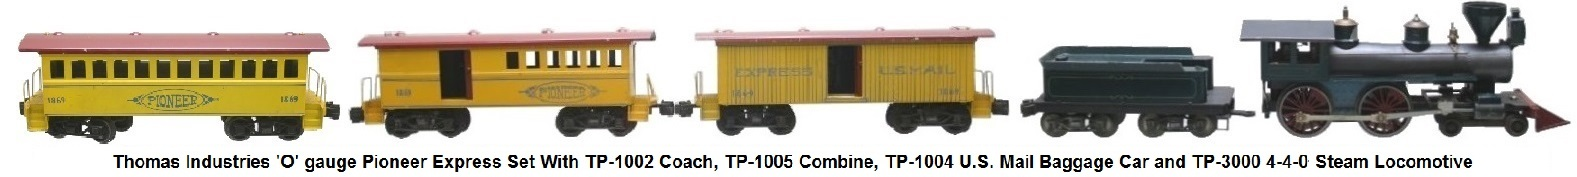 Thomas Industries Pioneer Set 'O' gauge with 1869 US Mail Boxcar, Coach and Combine